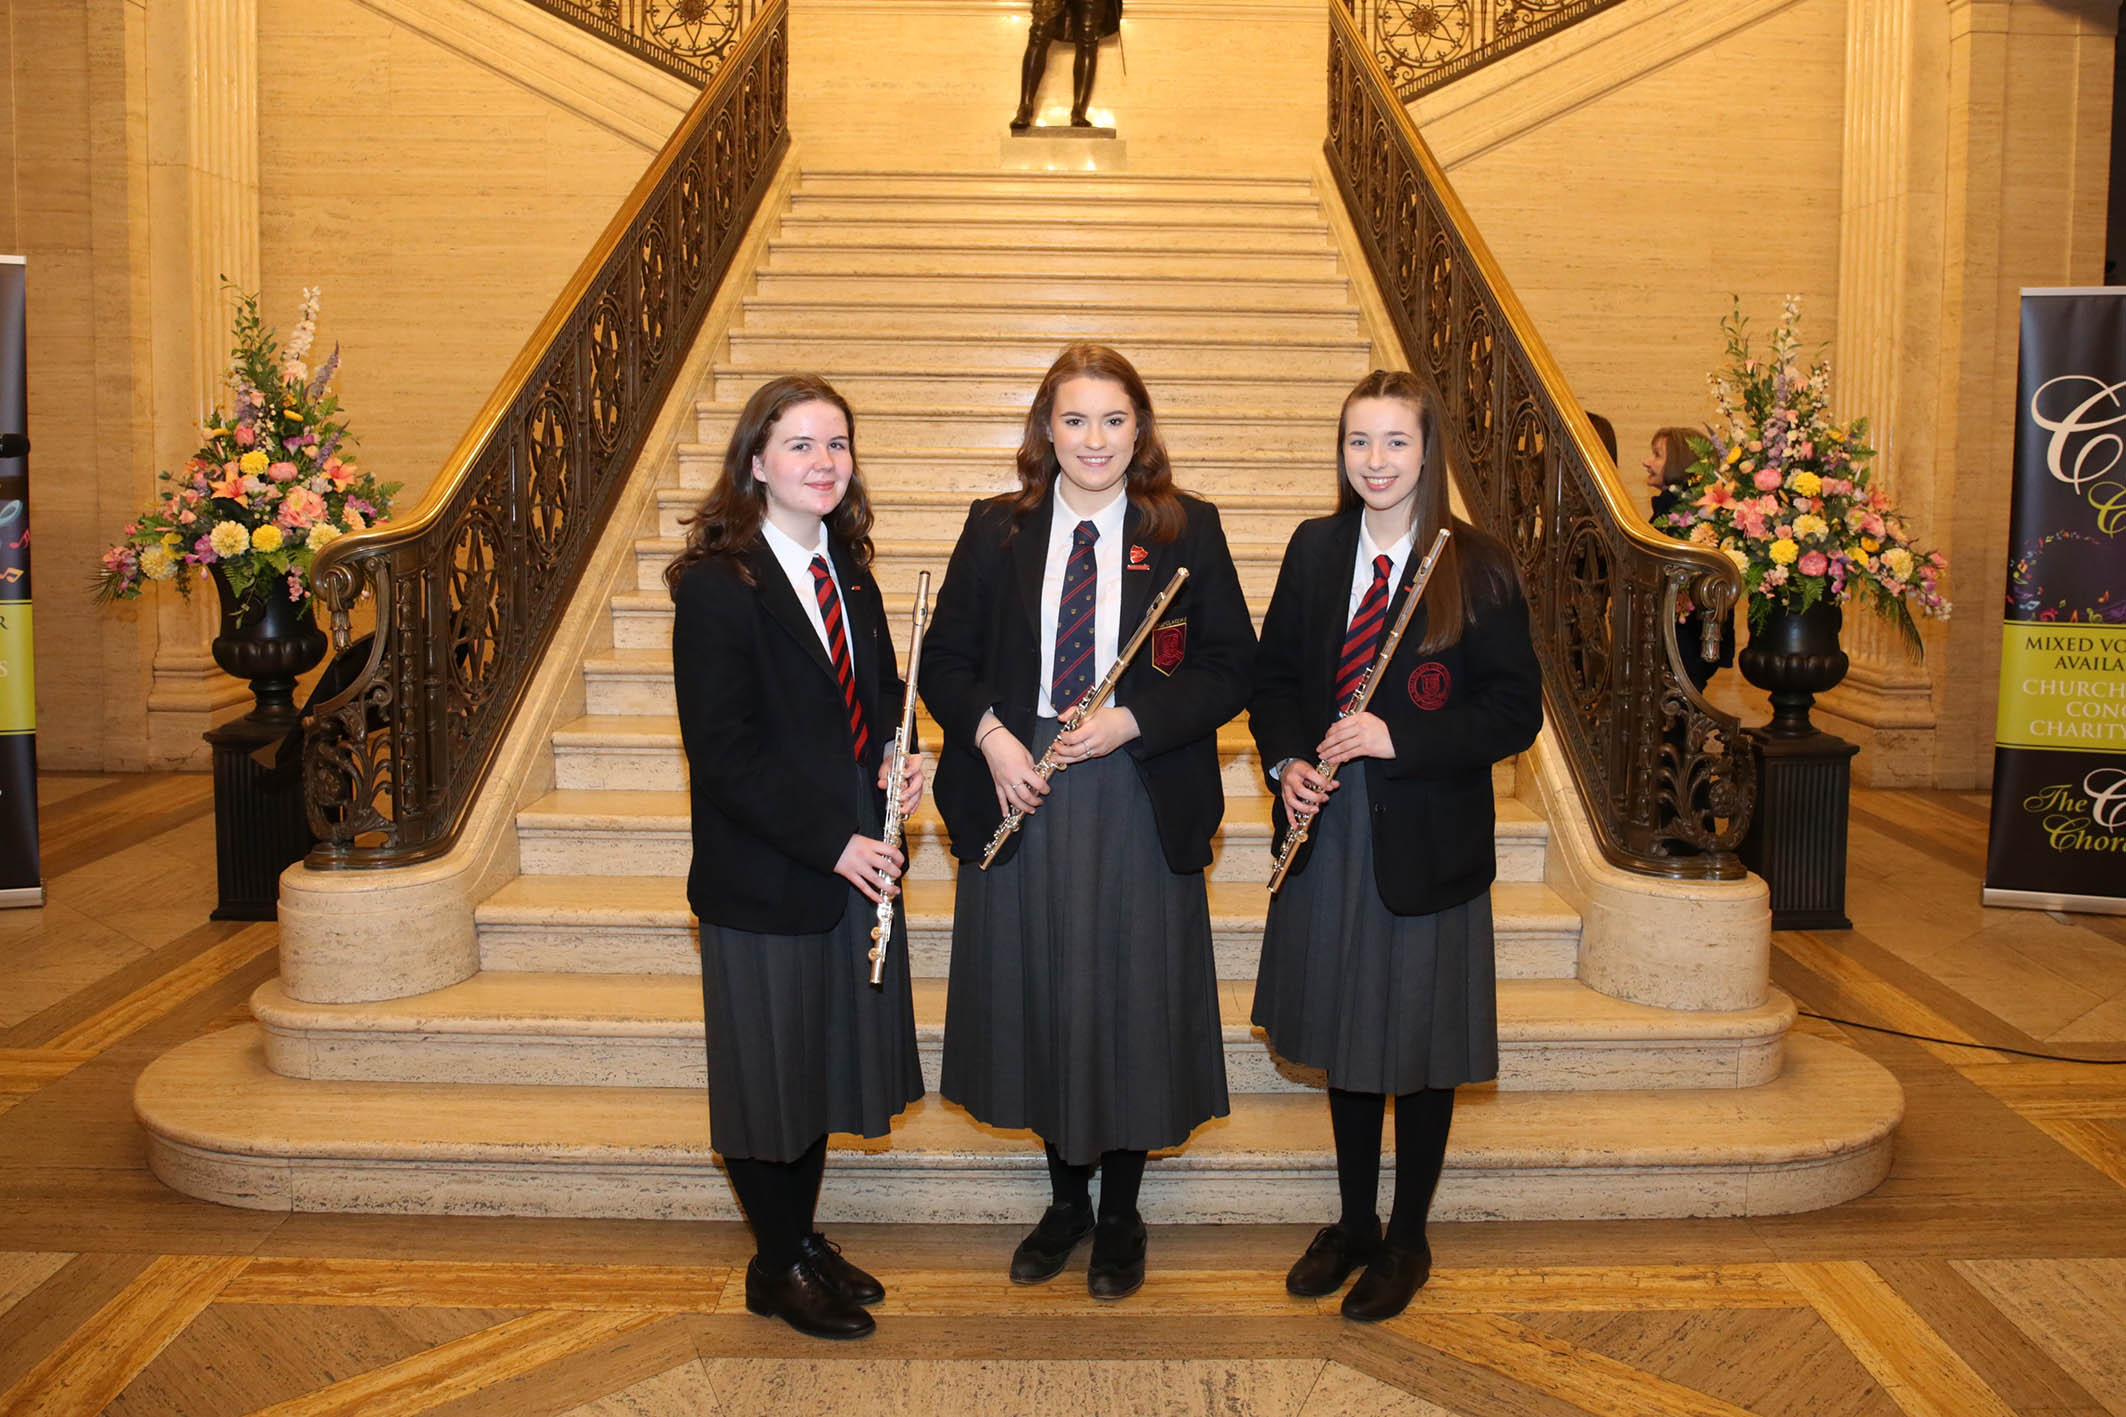 Ballyclare High School flautists, Abigail McQueen, Corran Crawford and Emma Blacoe